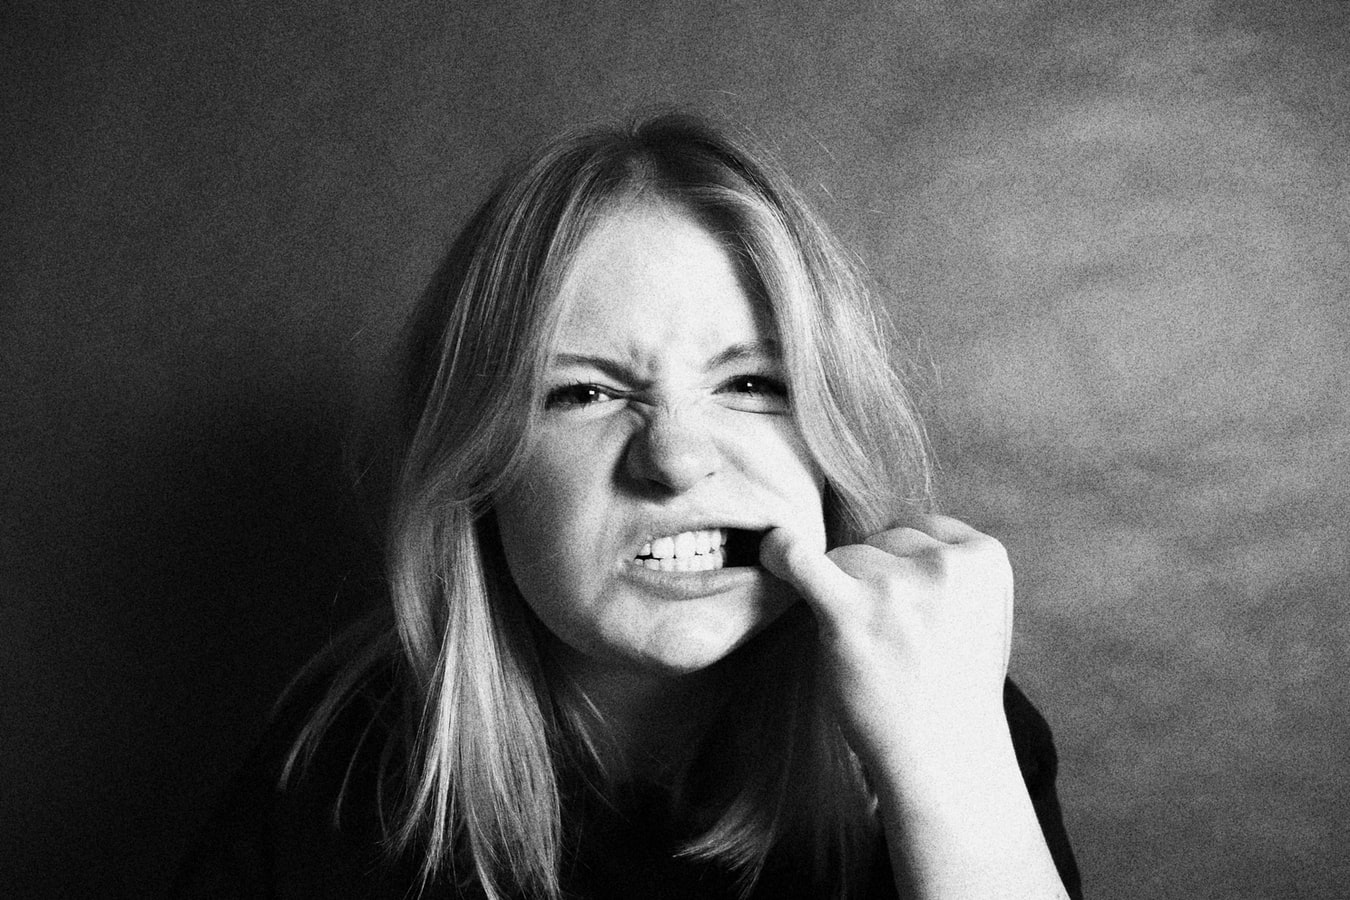 woman holding her mouth open